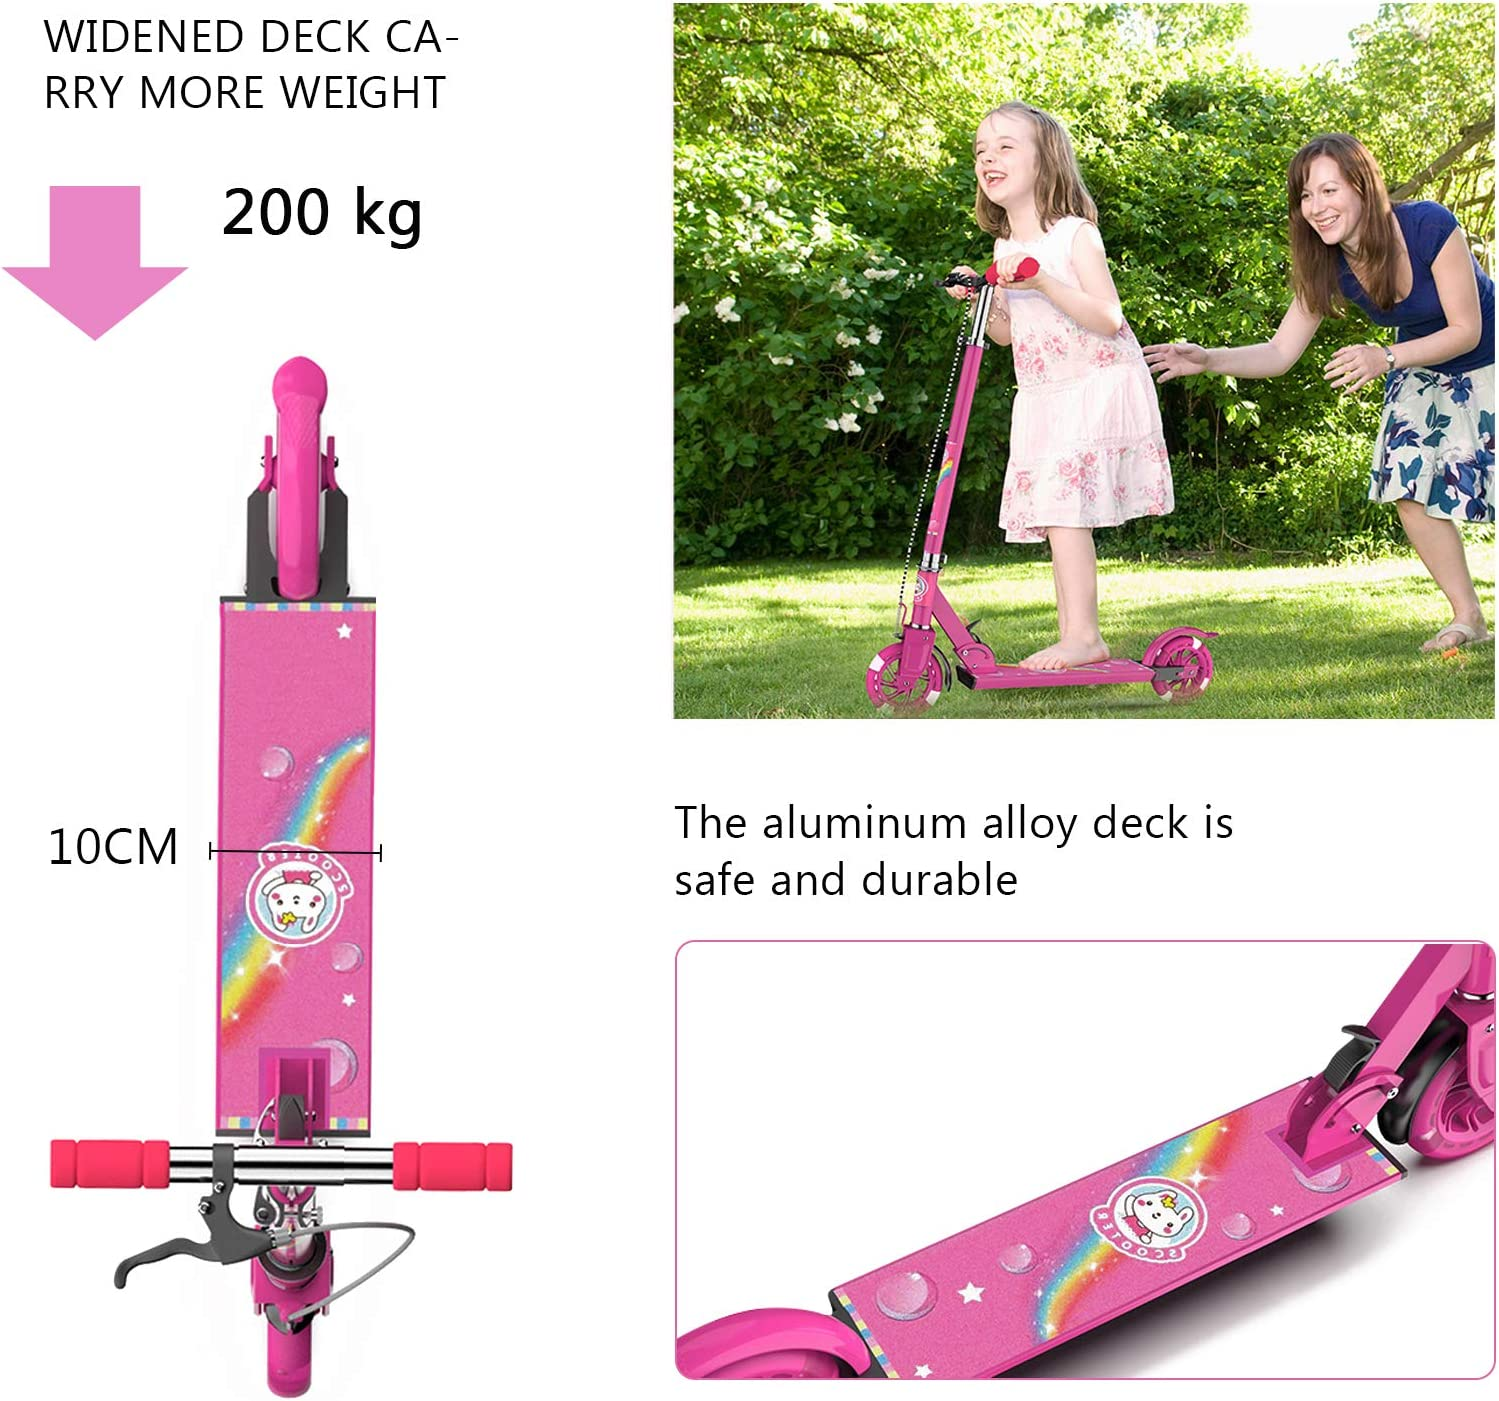 OLYSPM Scooter for Kids,2 Wheel Folding Kick Scooter with Adjustable Handle Bars,With safety handbrake,Multi-coloured LED Light Up Wheels,for Girls /& Boys Aged 3+